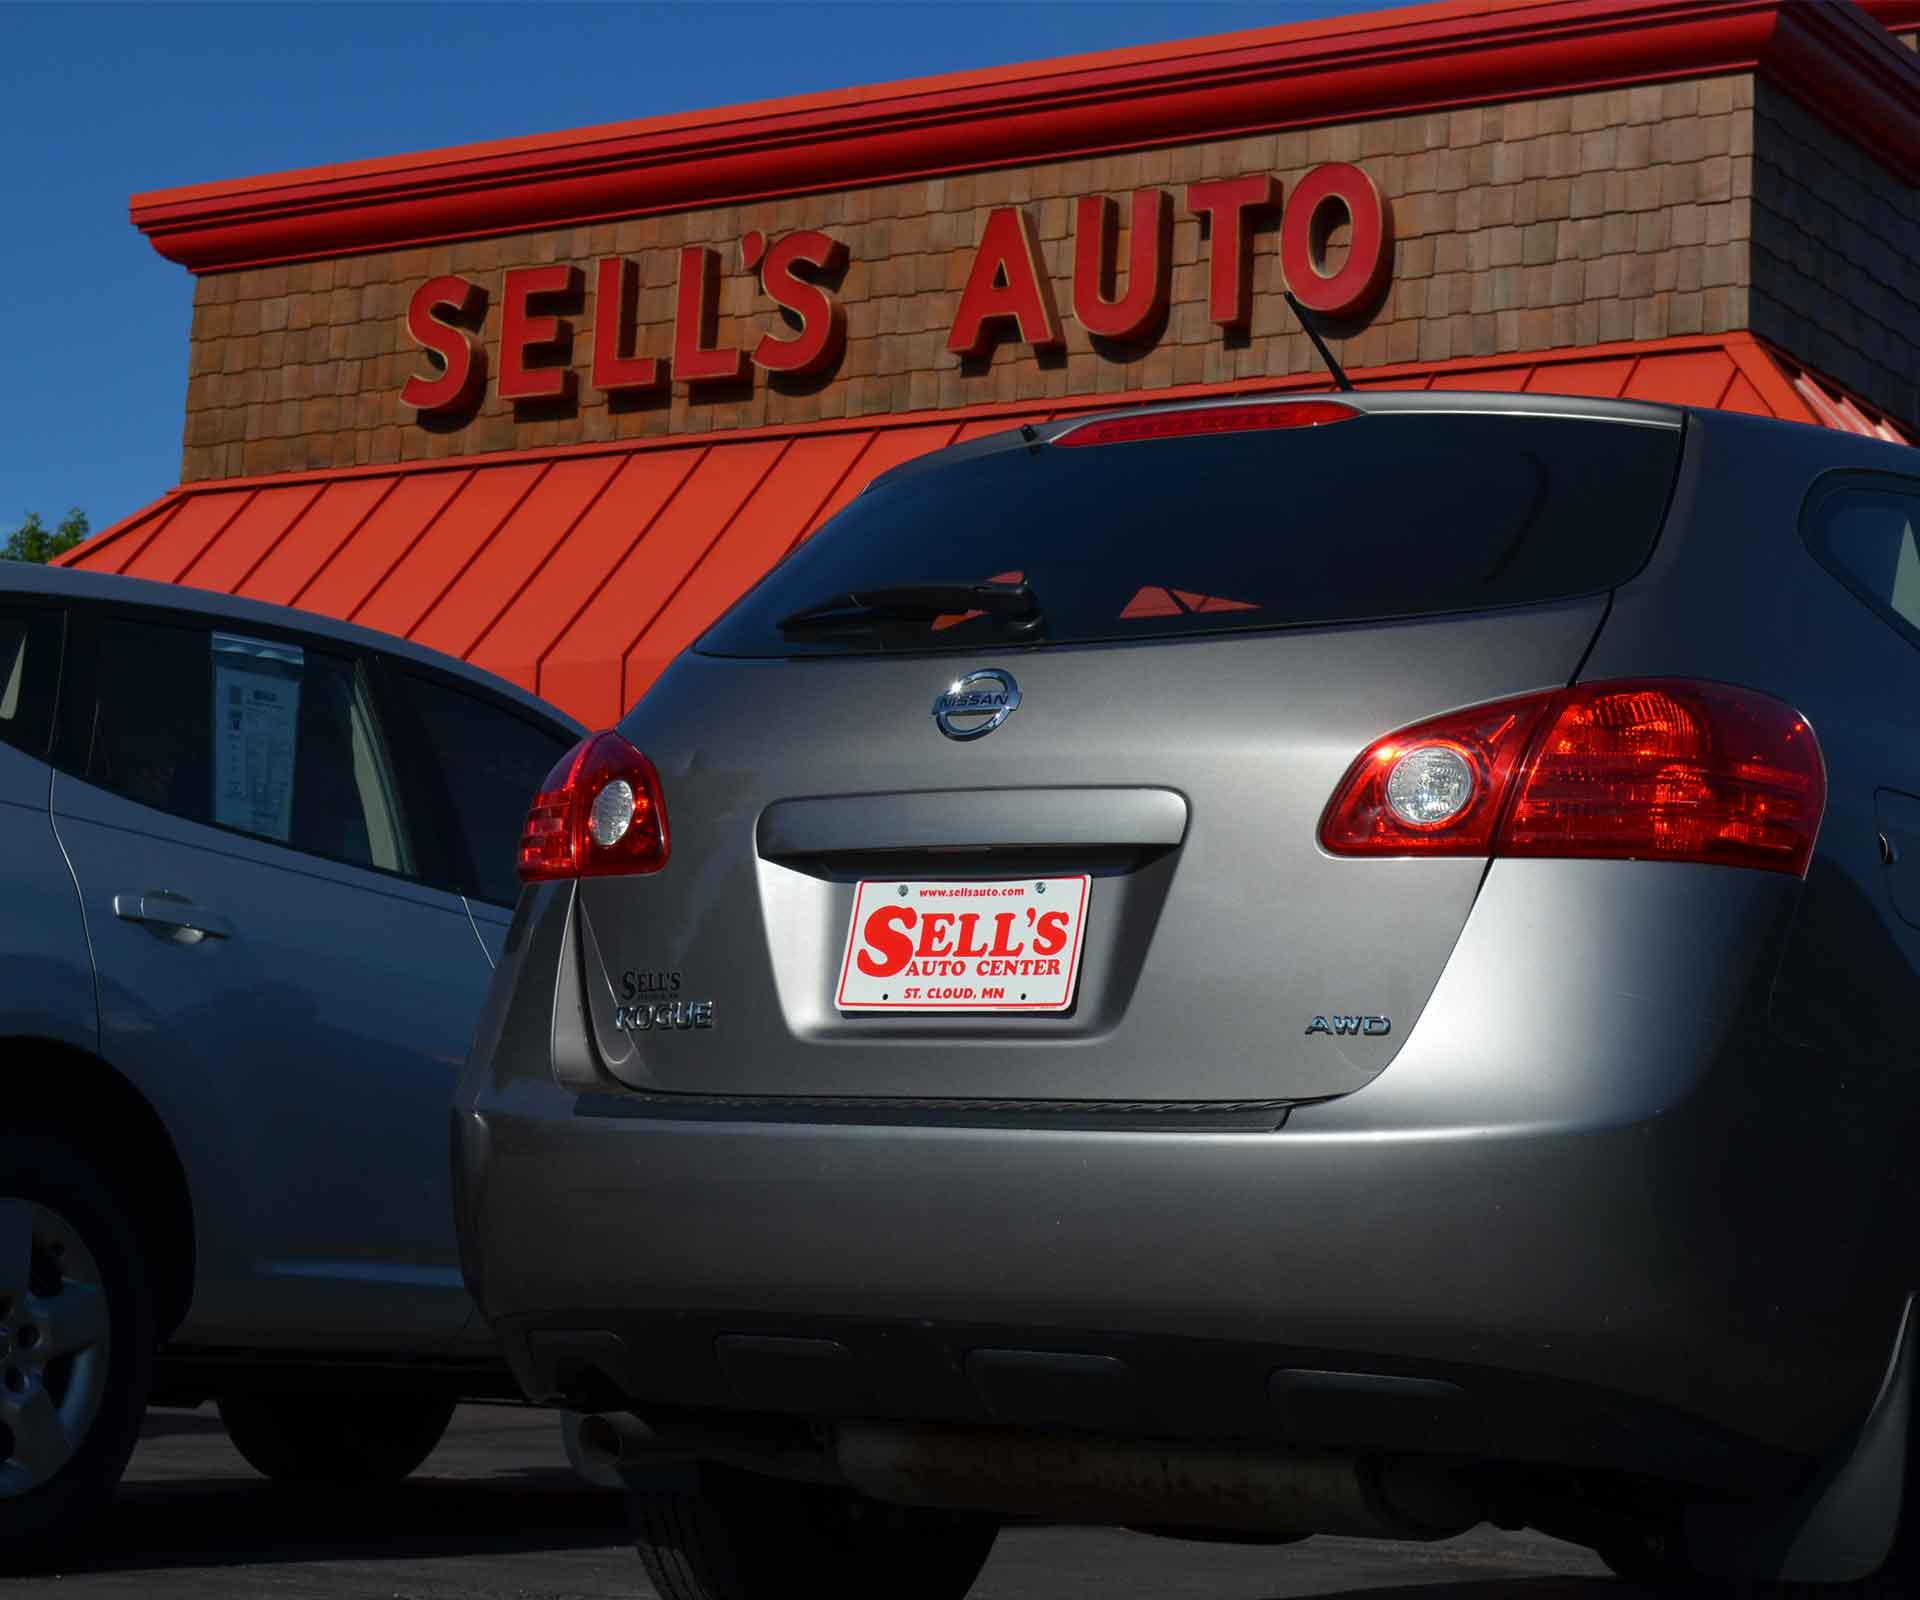 Sells Auto Used Car Dealer St Cloud Mn